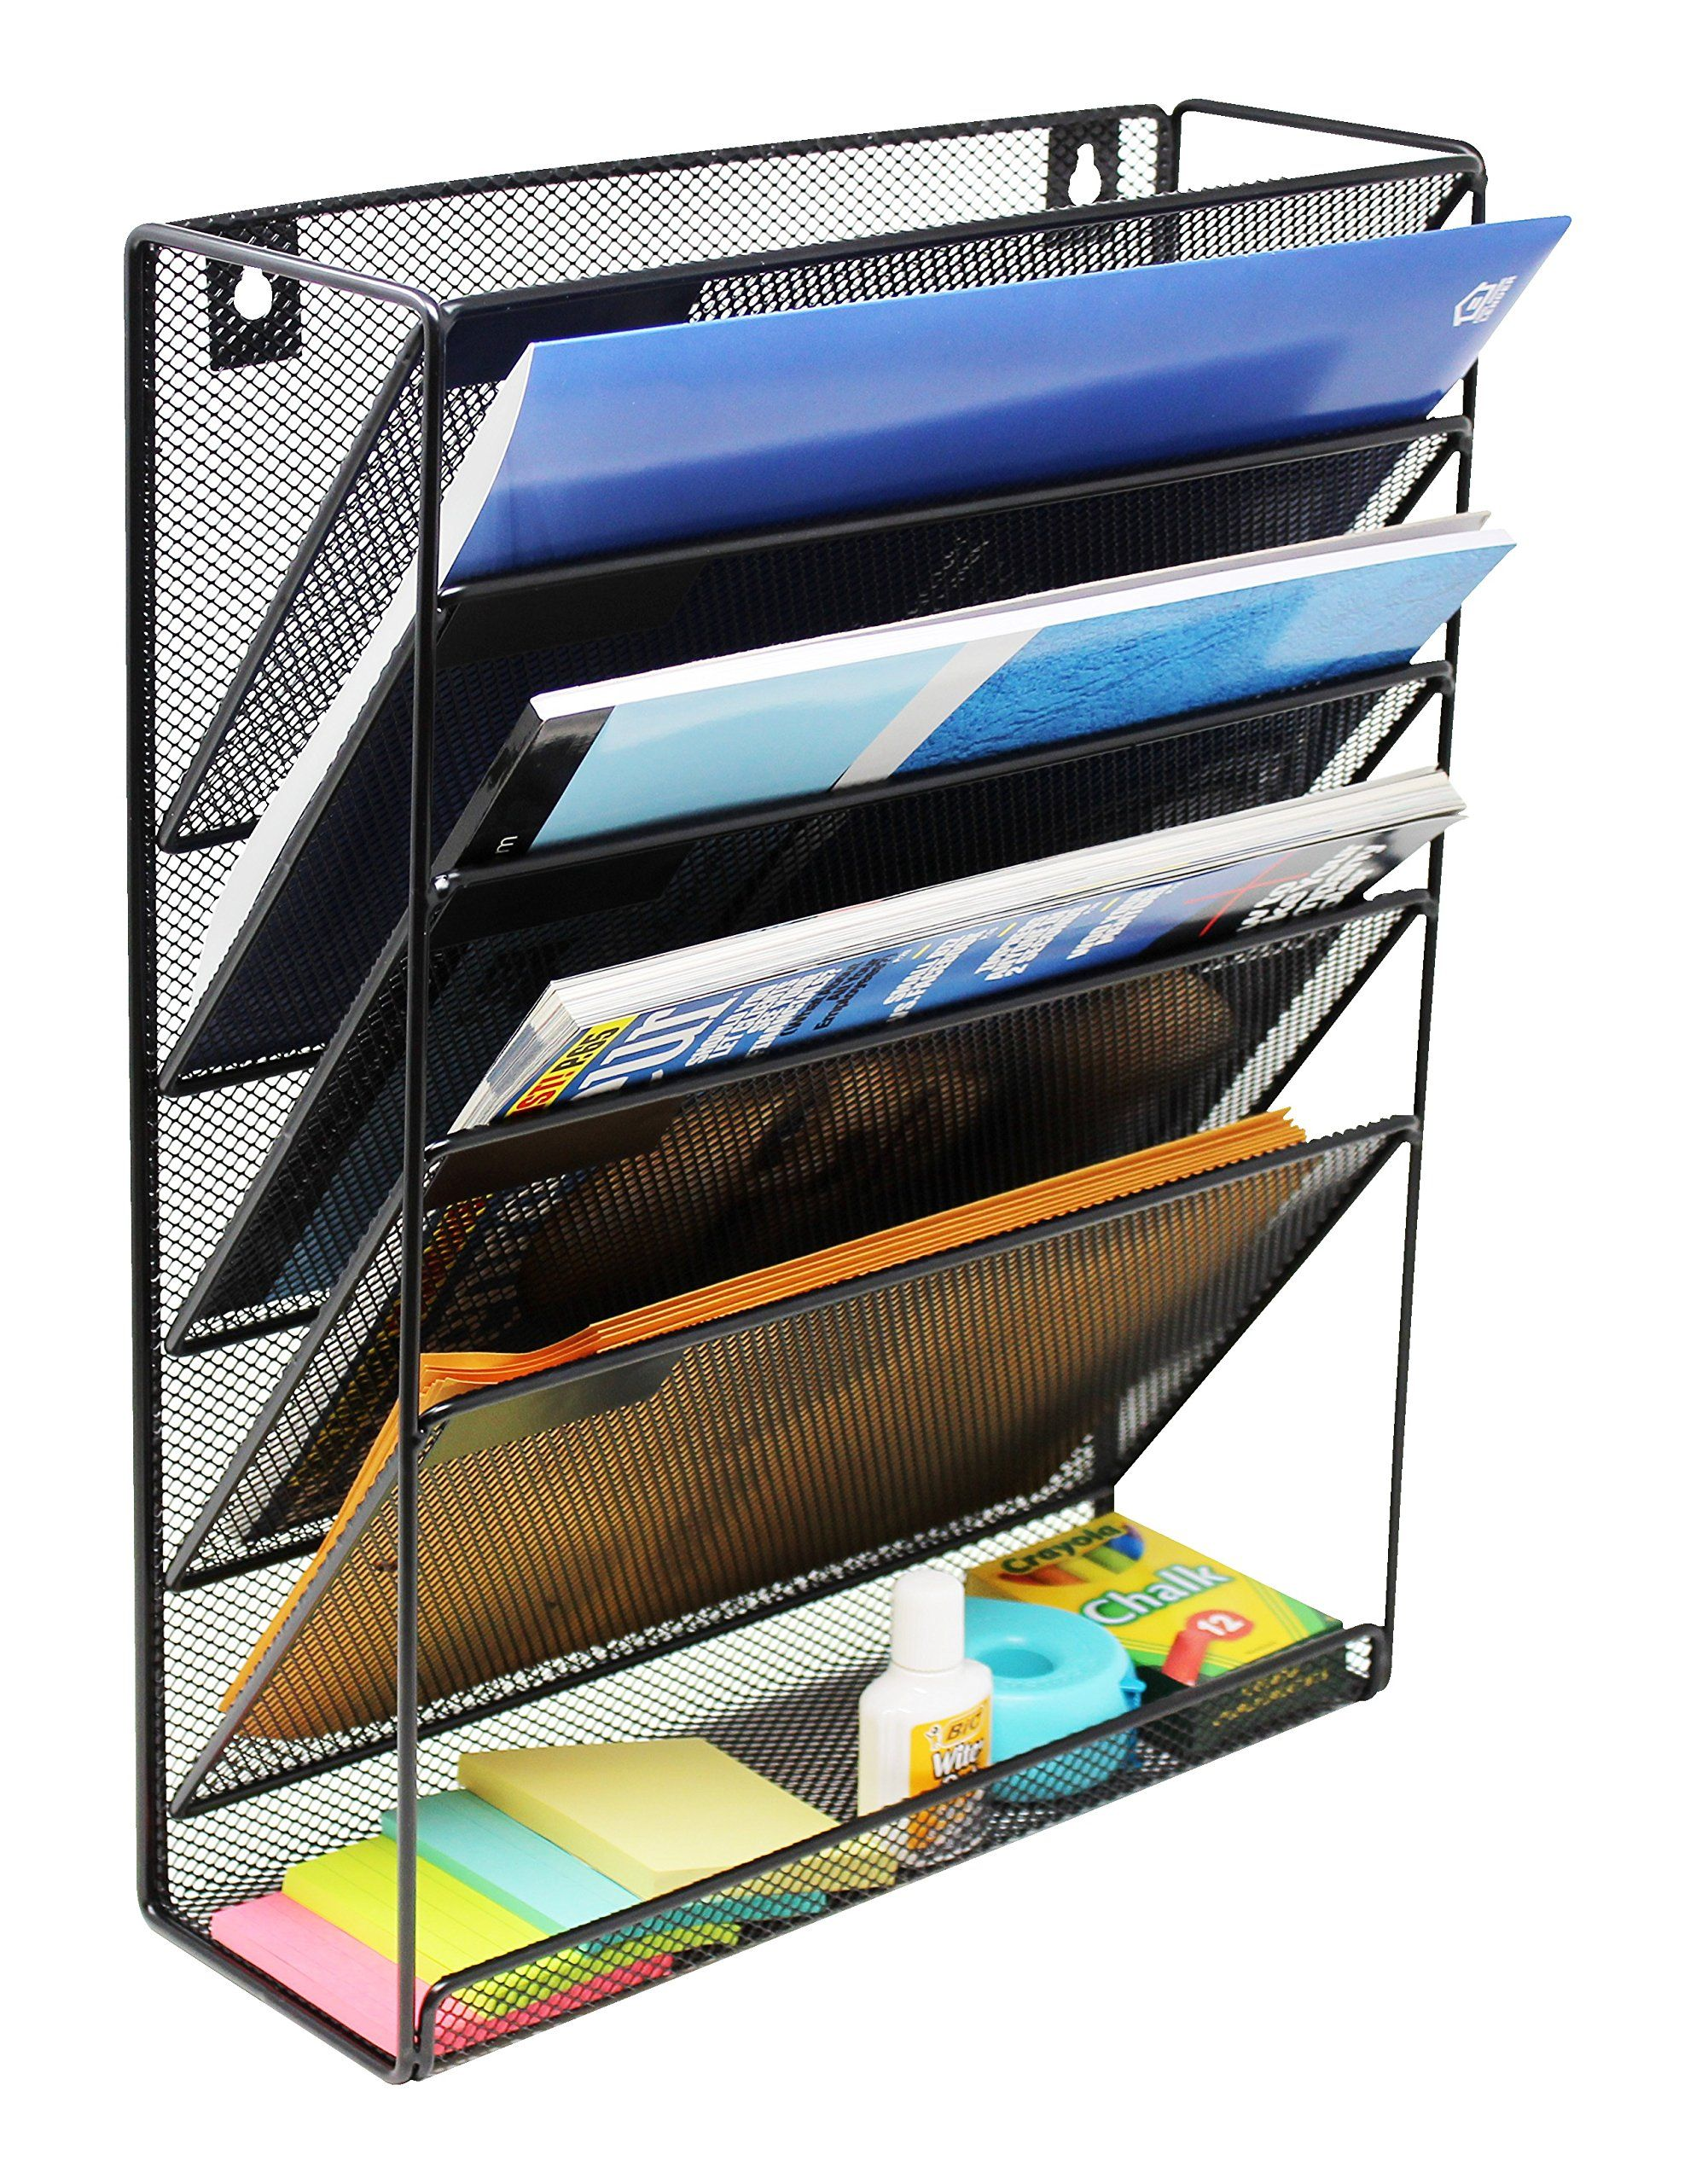 Mesh Wall Mounted Hanging Document And File Organizer 5 Compartment Vertical Magazine Rack And Mail Sorter Hol Desk Organization Wall File Organizer Wall File